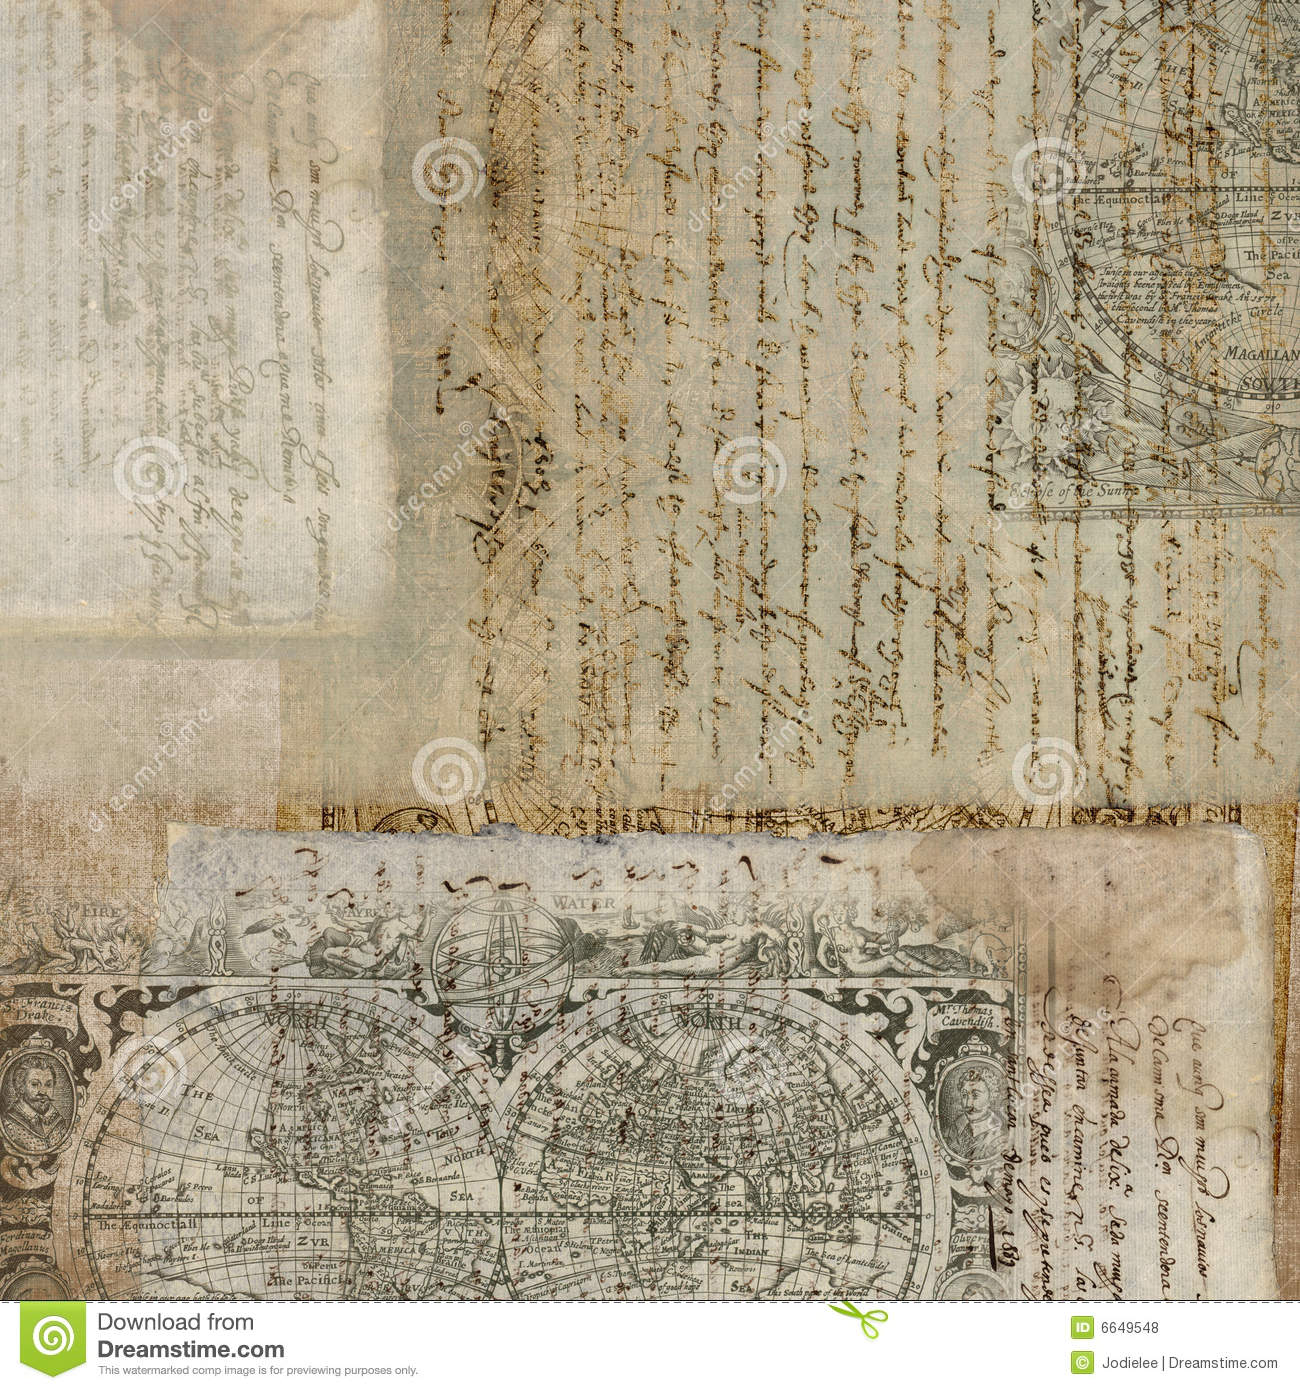 Antique Paper: Vintage Antique Text Paper Background Royalty Free Stock